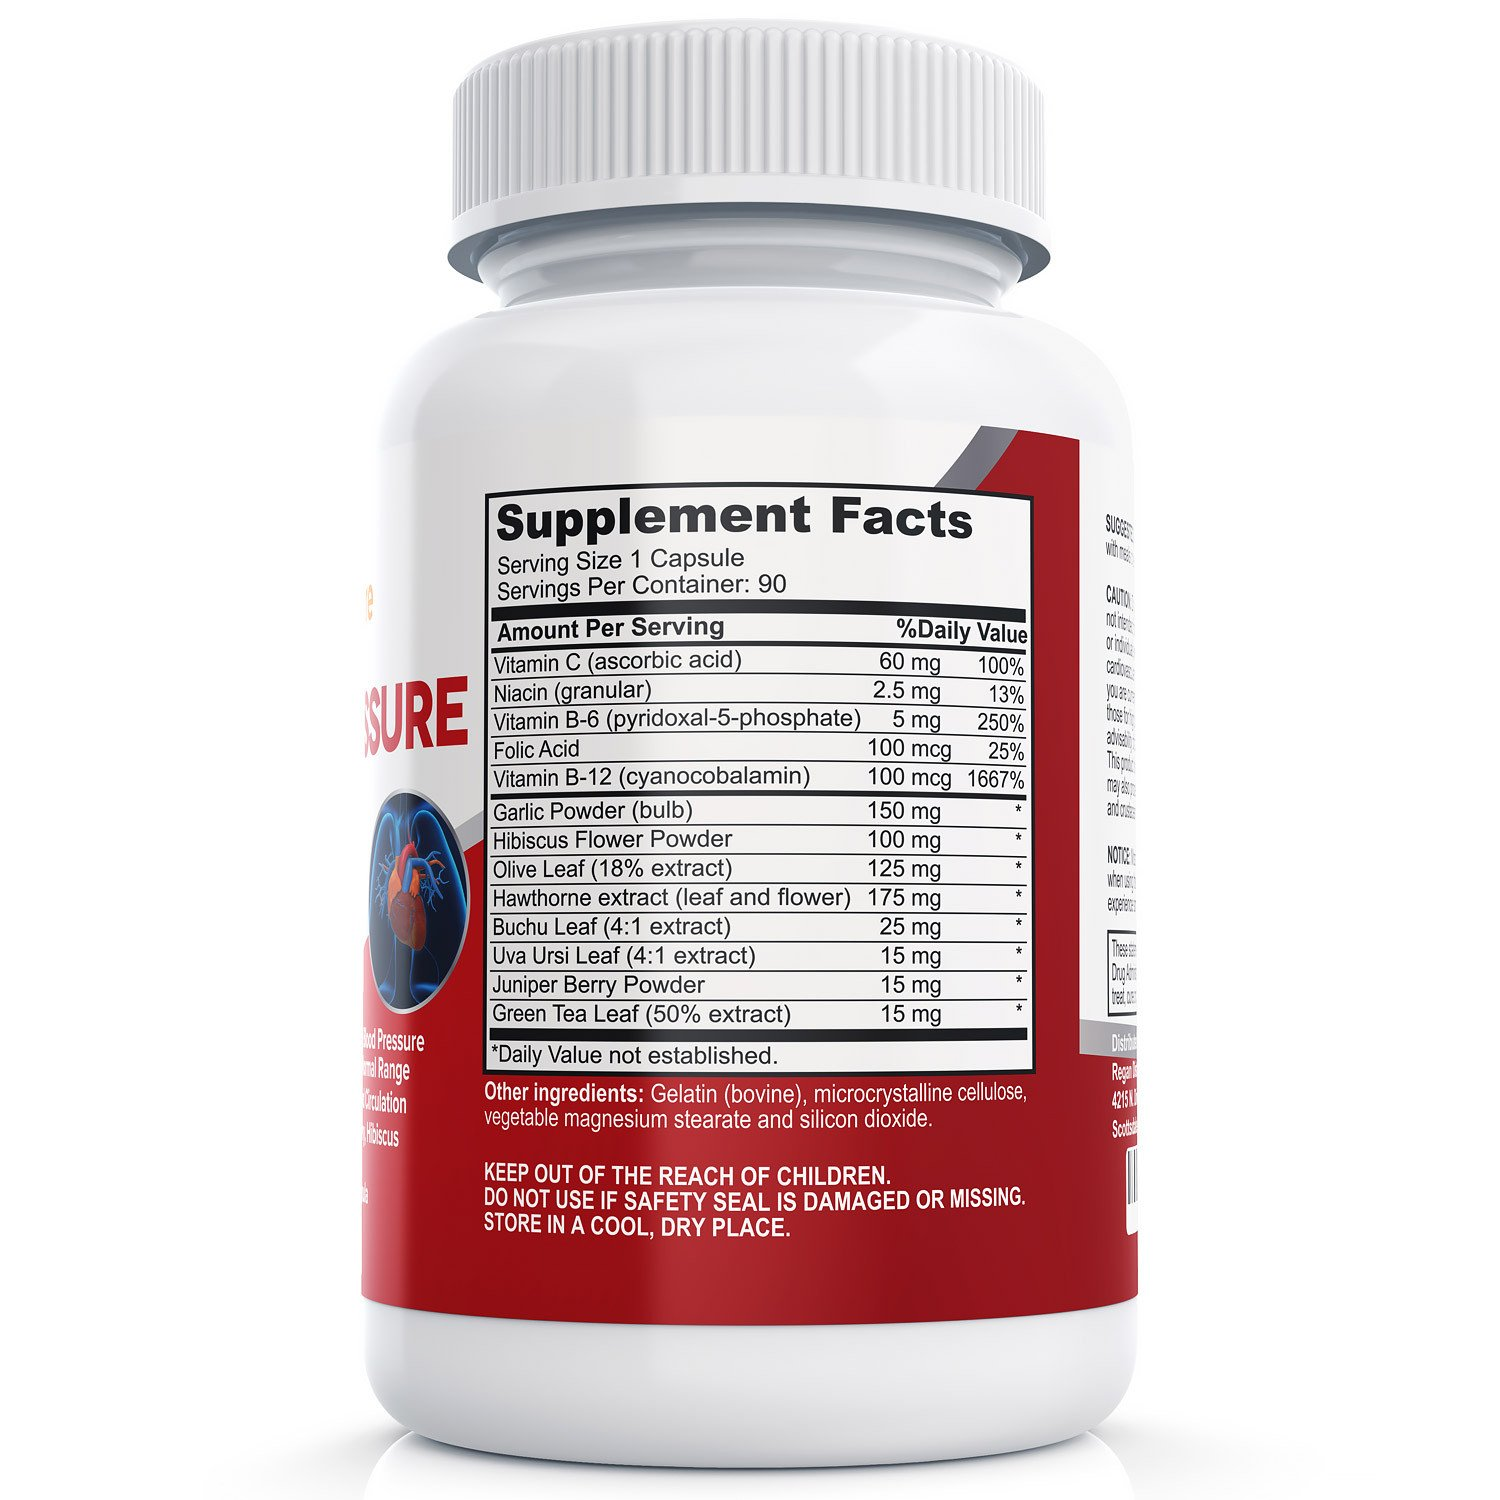 Blood Pressure Support 90 Caps - Includes Hawthorn Berry, Hibiscus, & Garlic (Non-GMO)